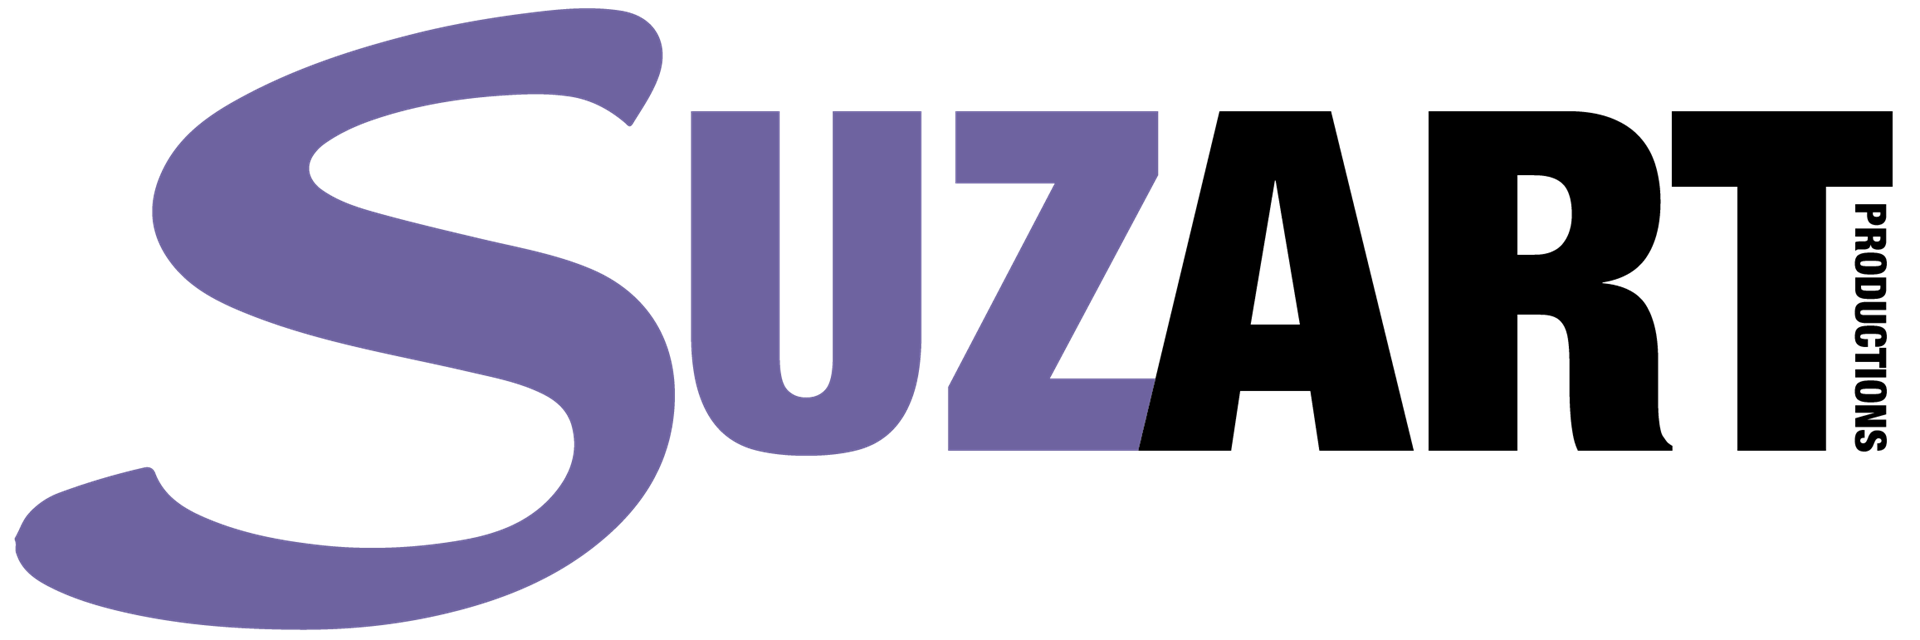 Suzart Productions Logo